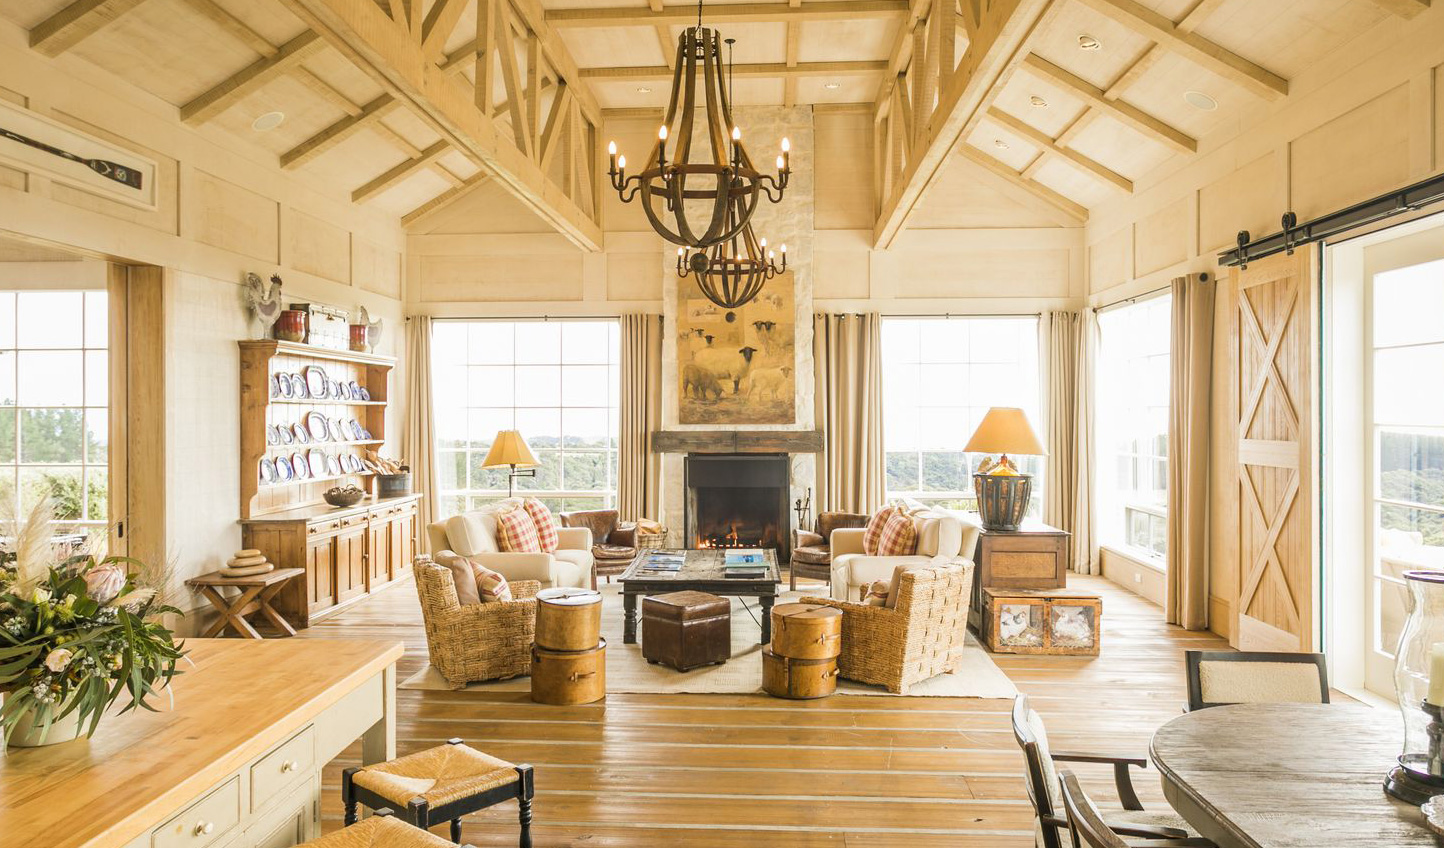 A stay in the Owner's Cottage will leave you feeling right at home